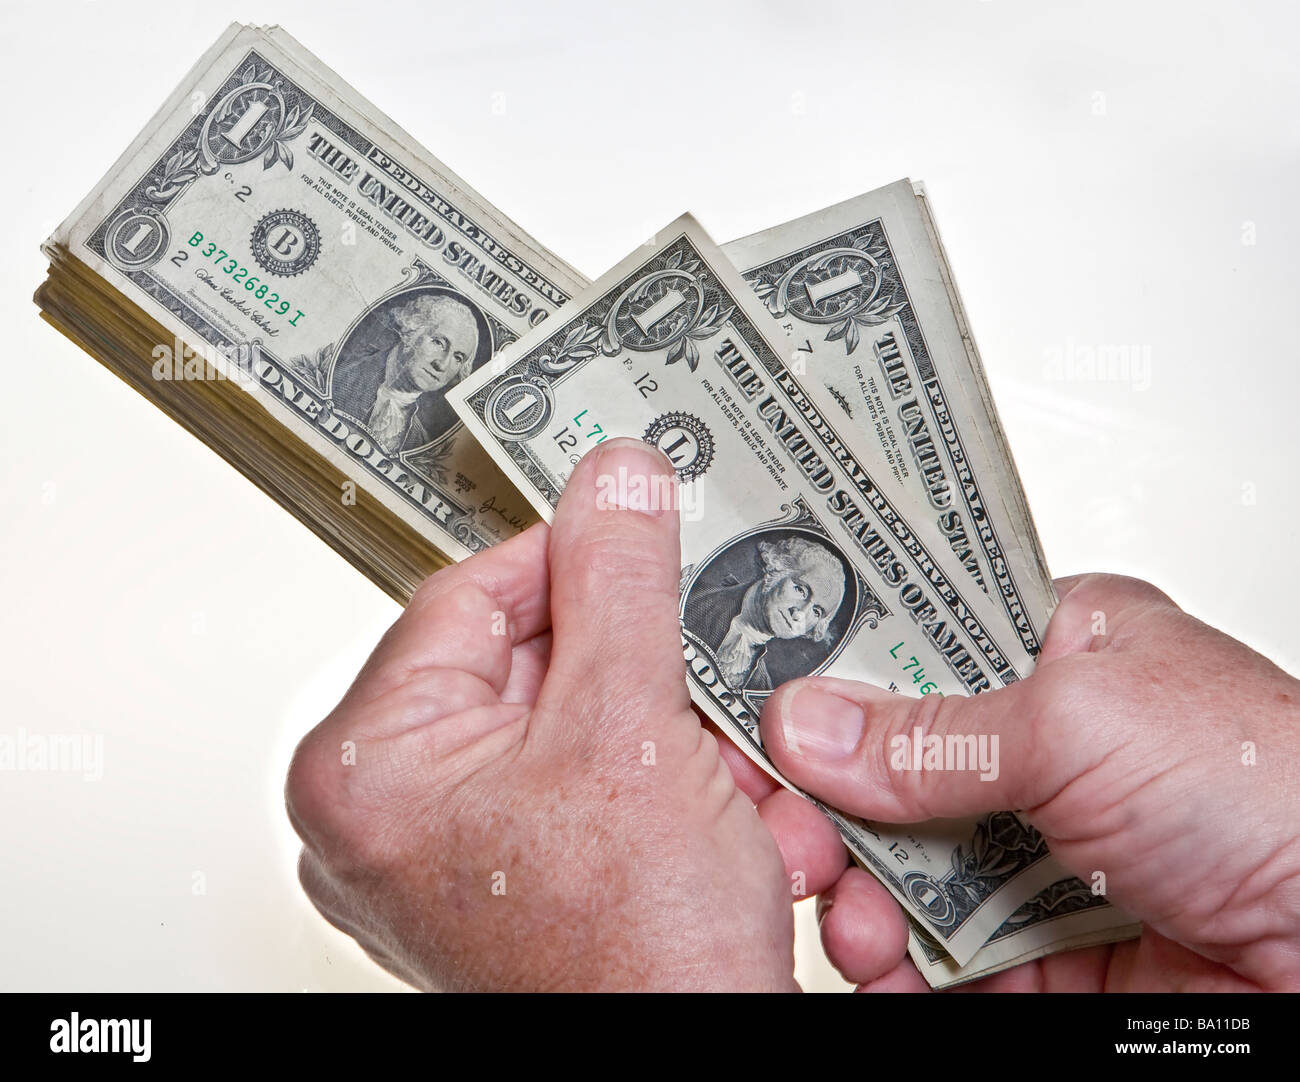 worksheet Counting Dollar Bills older mans hands counting one dollar bills onto a stack on white background